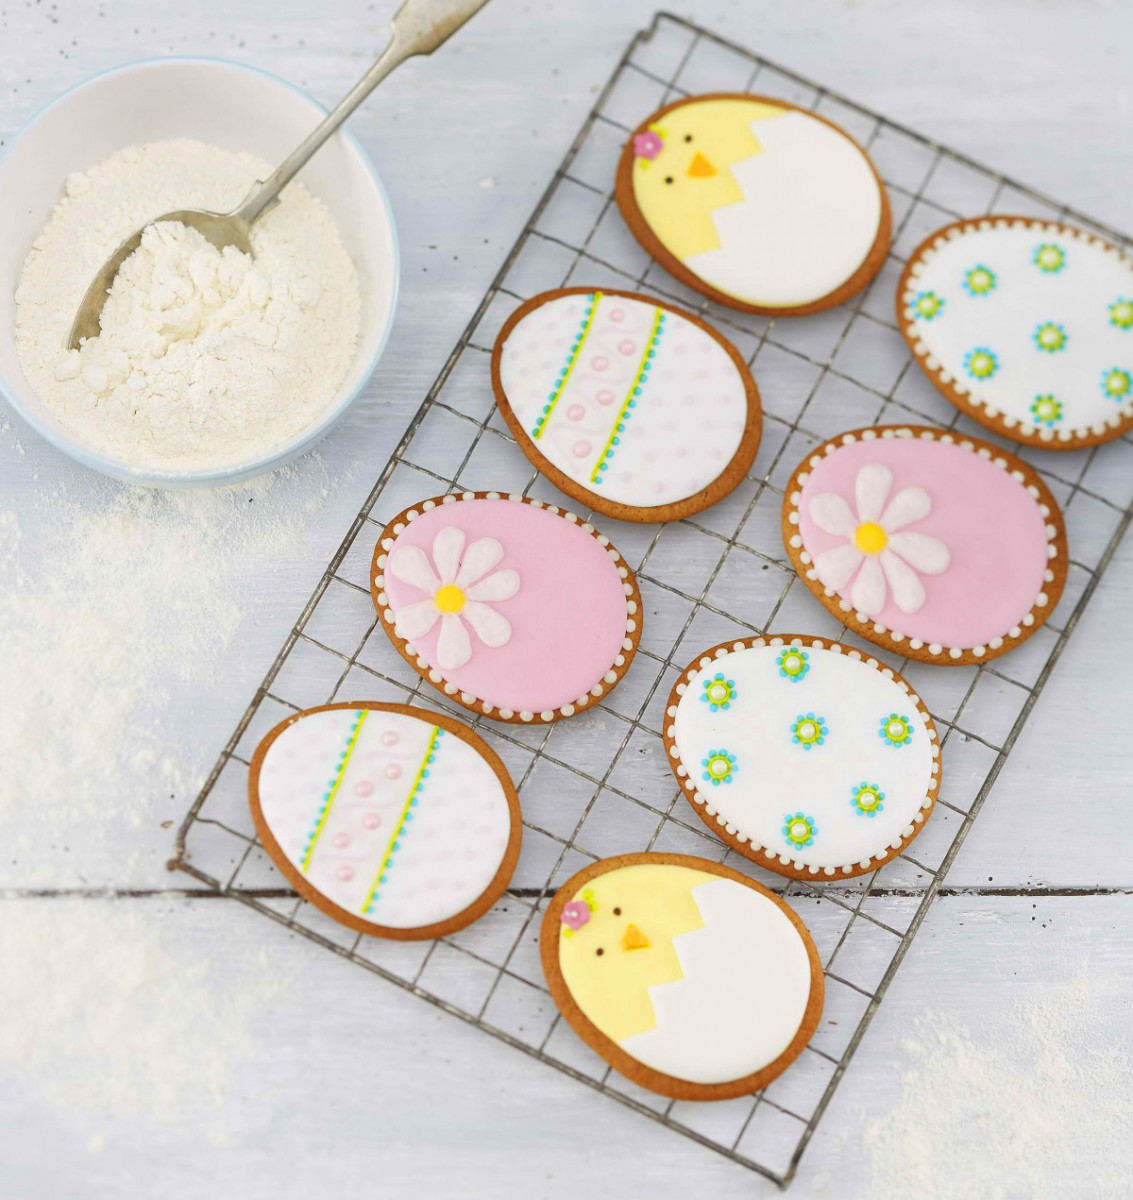 How To Make Easter Egg Cookies